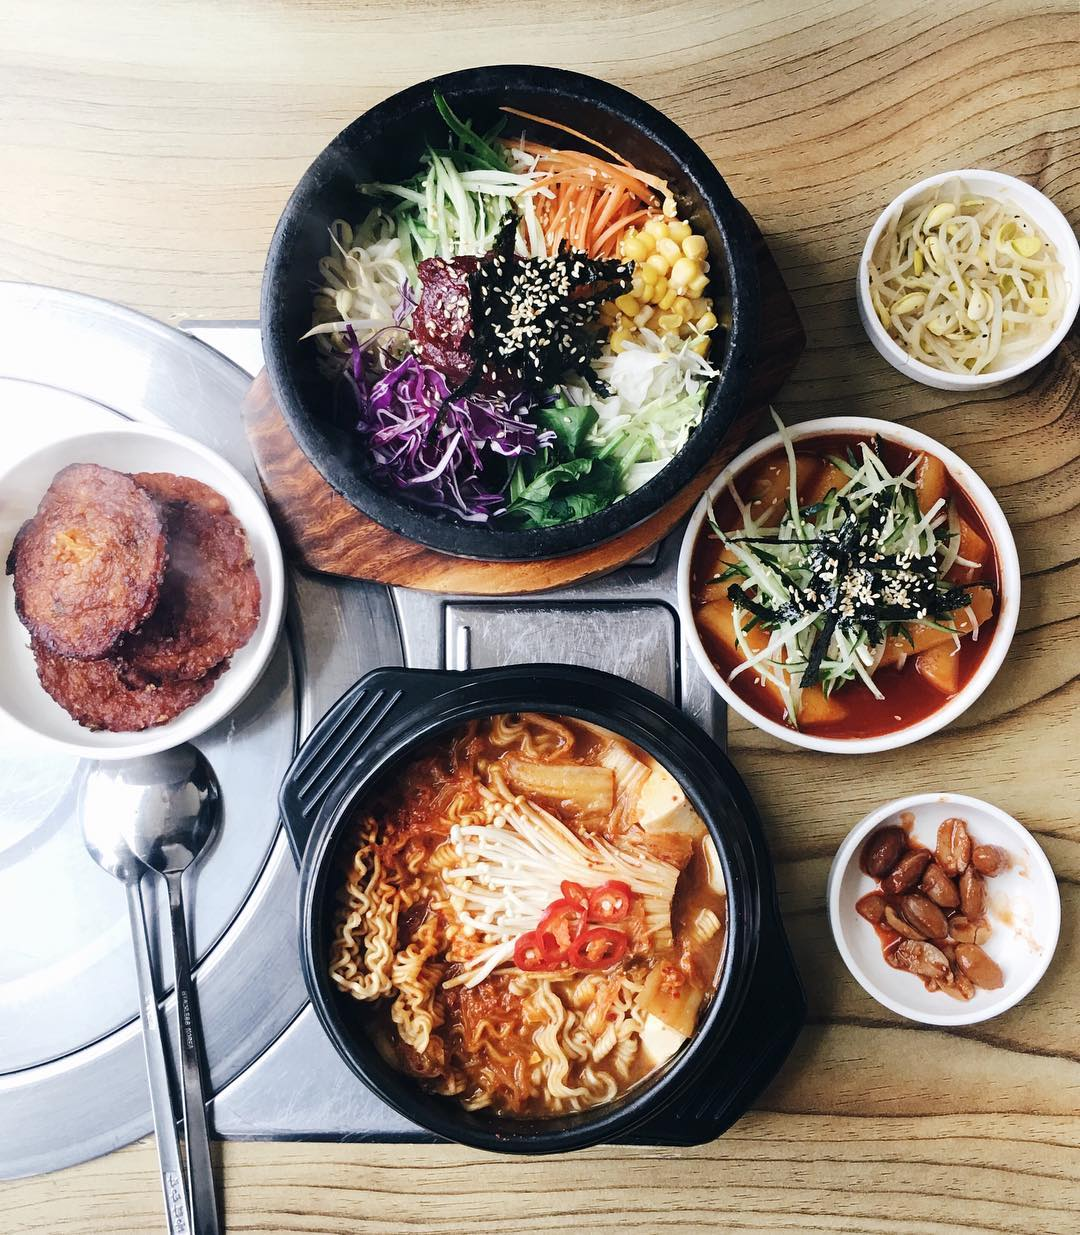 10 Vegetarian Food Delivery Options In Singapore For Meatless Meals Sent Straight To Your Door boneless kitchen